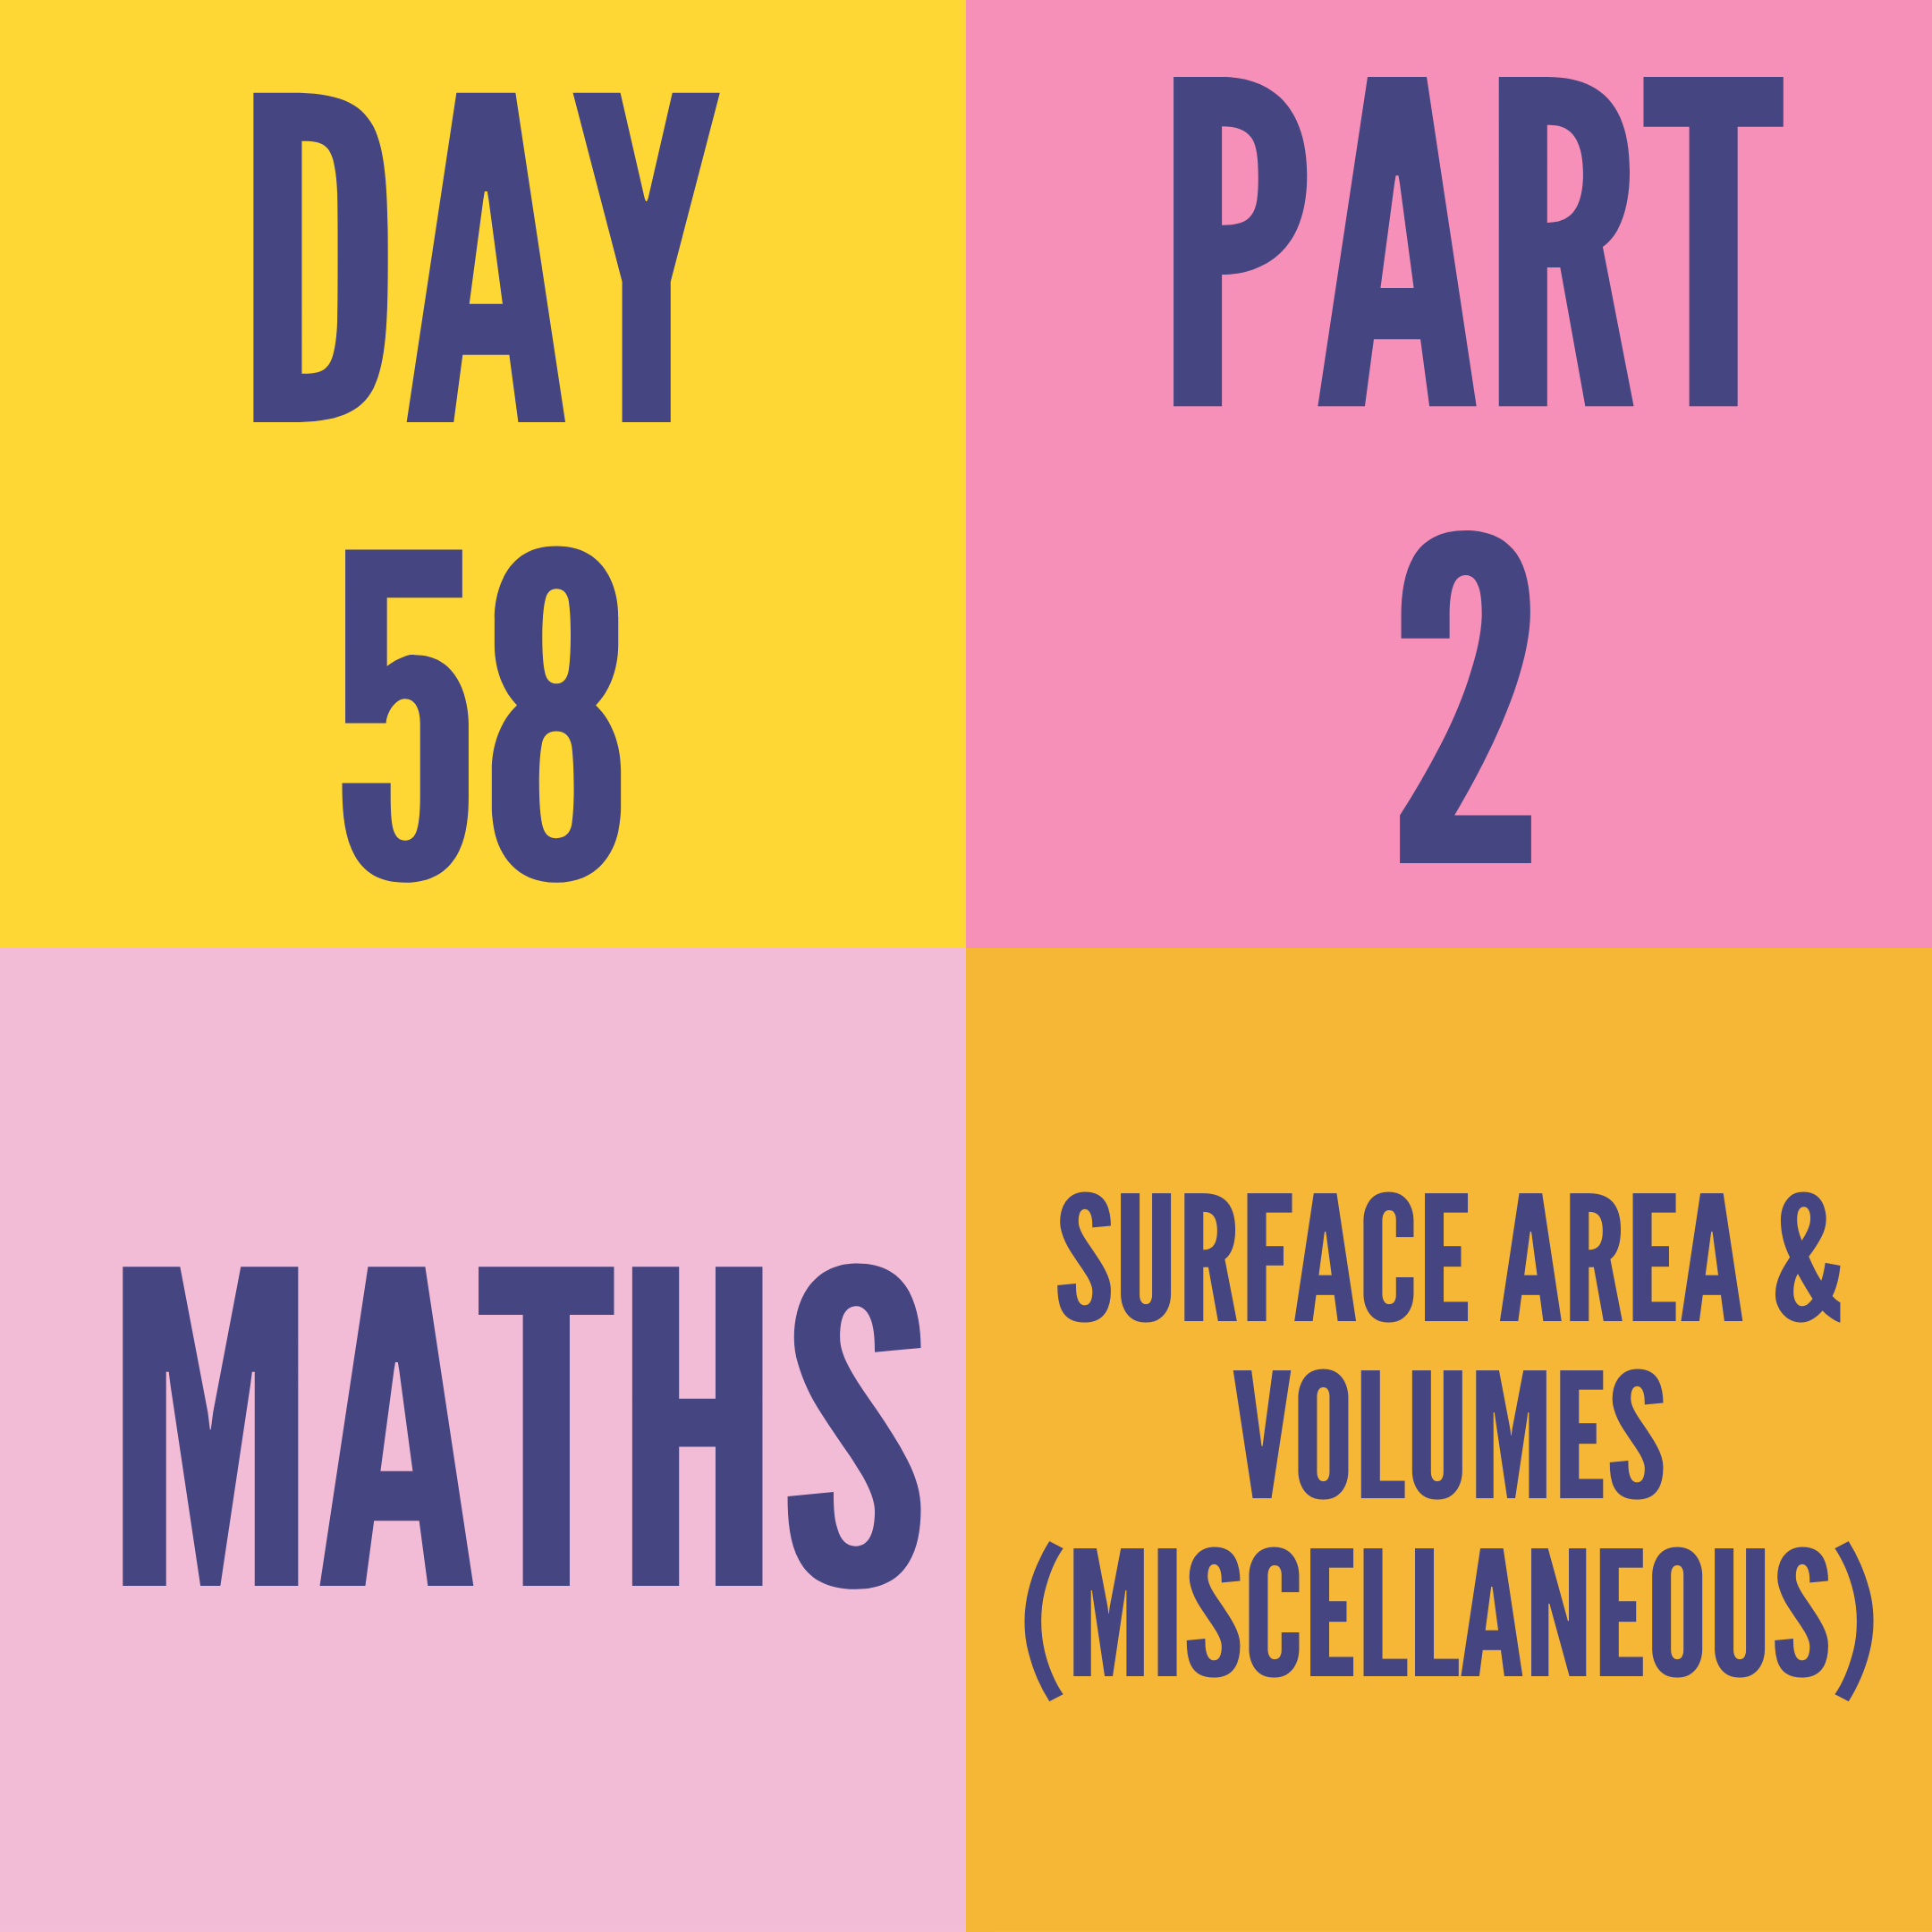 DAY-58 PART-2 SURFACE AREA & VOLUMES (MISCELLANEOUS)